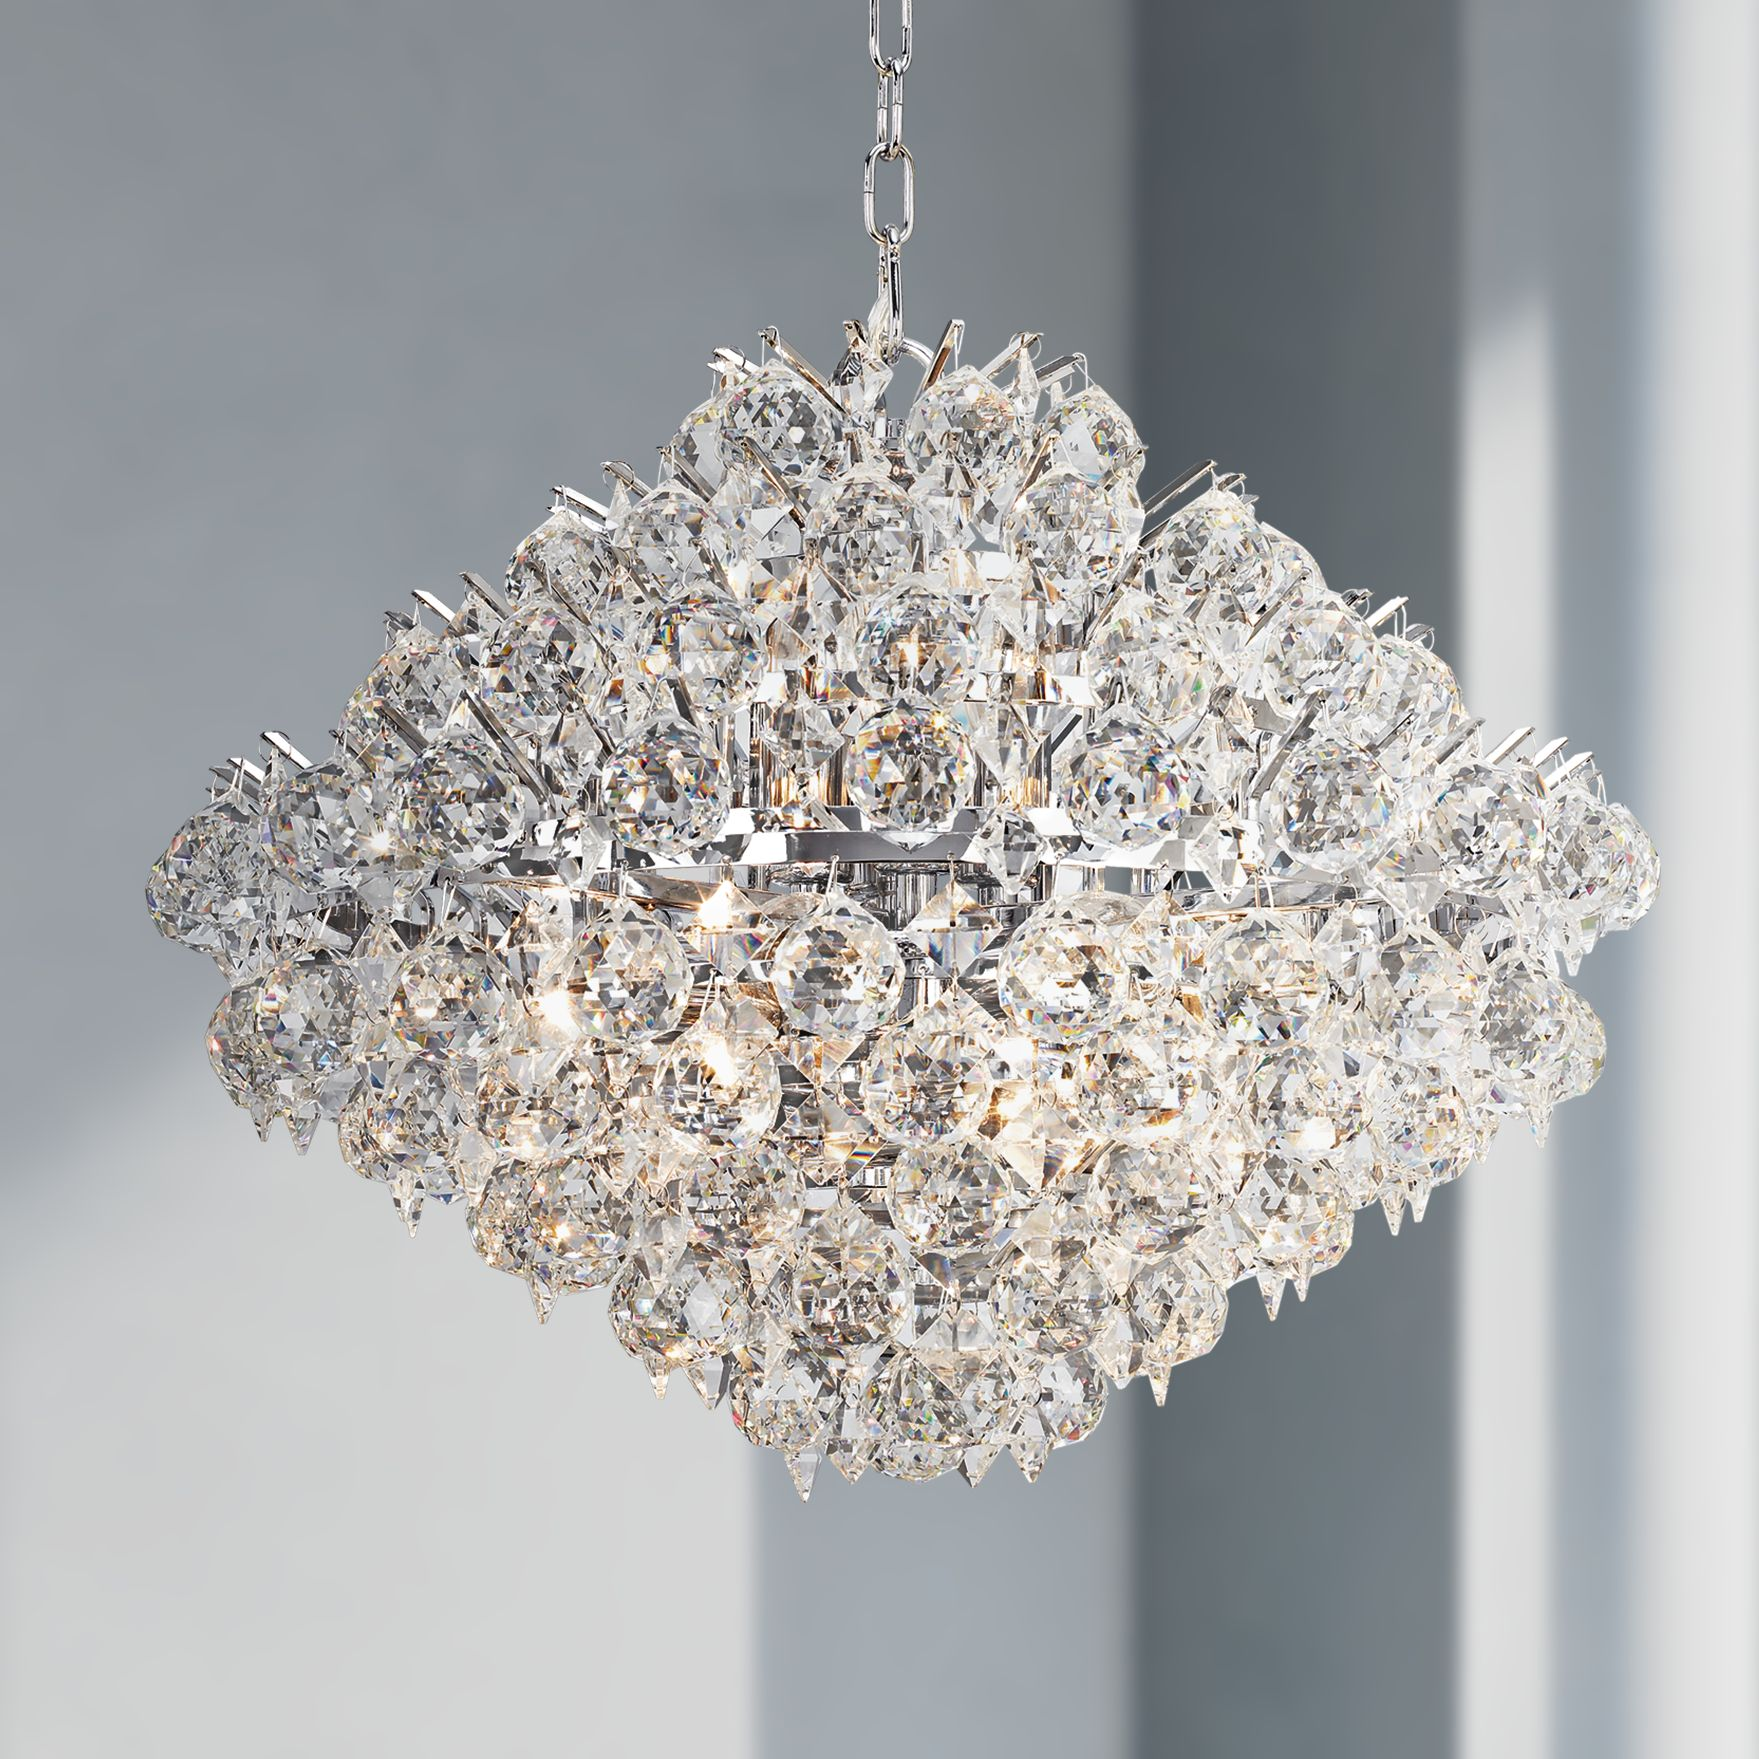 Small Crystal Chandeliers Little Luxurious Chandelier